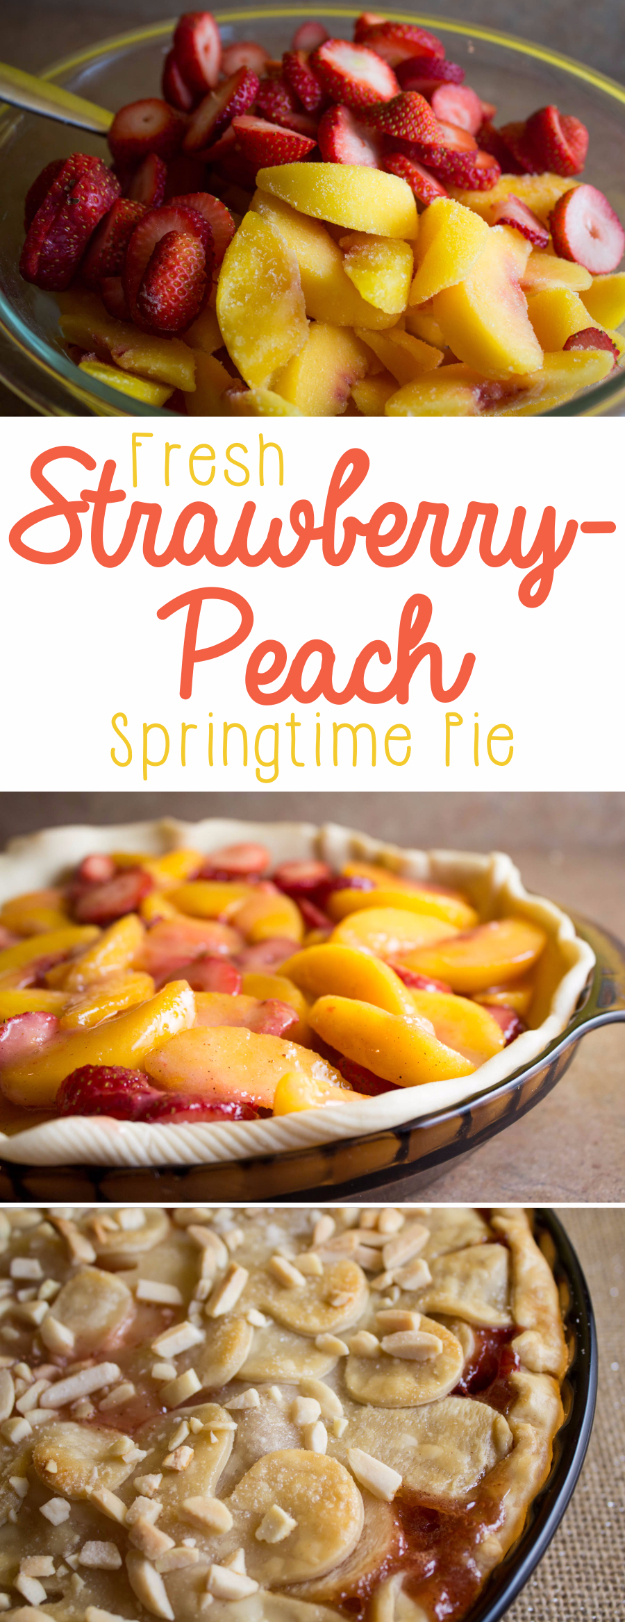 Best Pie Recipes - Fresh Strawberry Peach Pie - Easy Pie Recipes From Scratch for Pecan, Apple, Banana, Pumpkin, Fruit, Peach and Chocolate Pies. Yummy Graham Cracker Crusts and Homemade Meringue #recipes #dessert